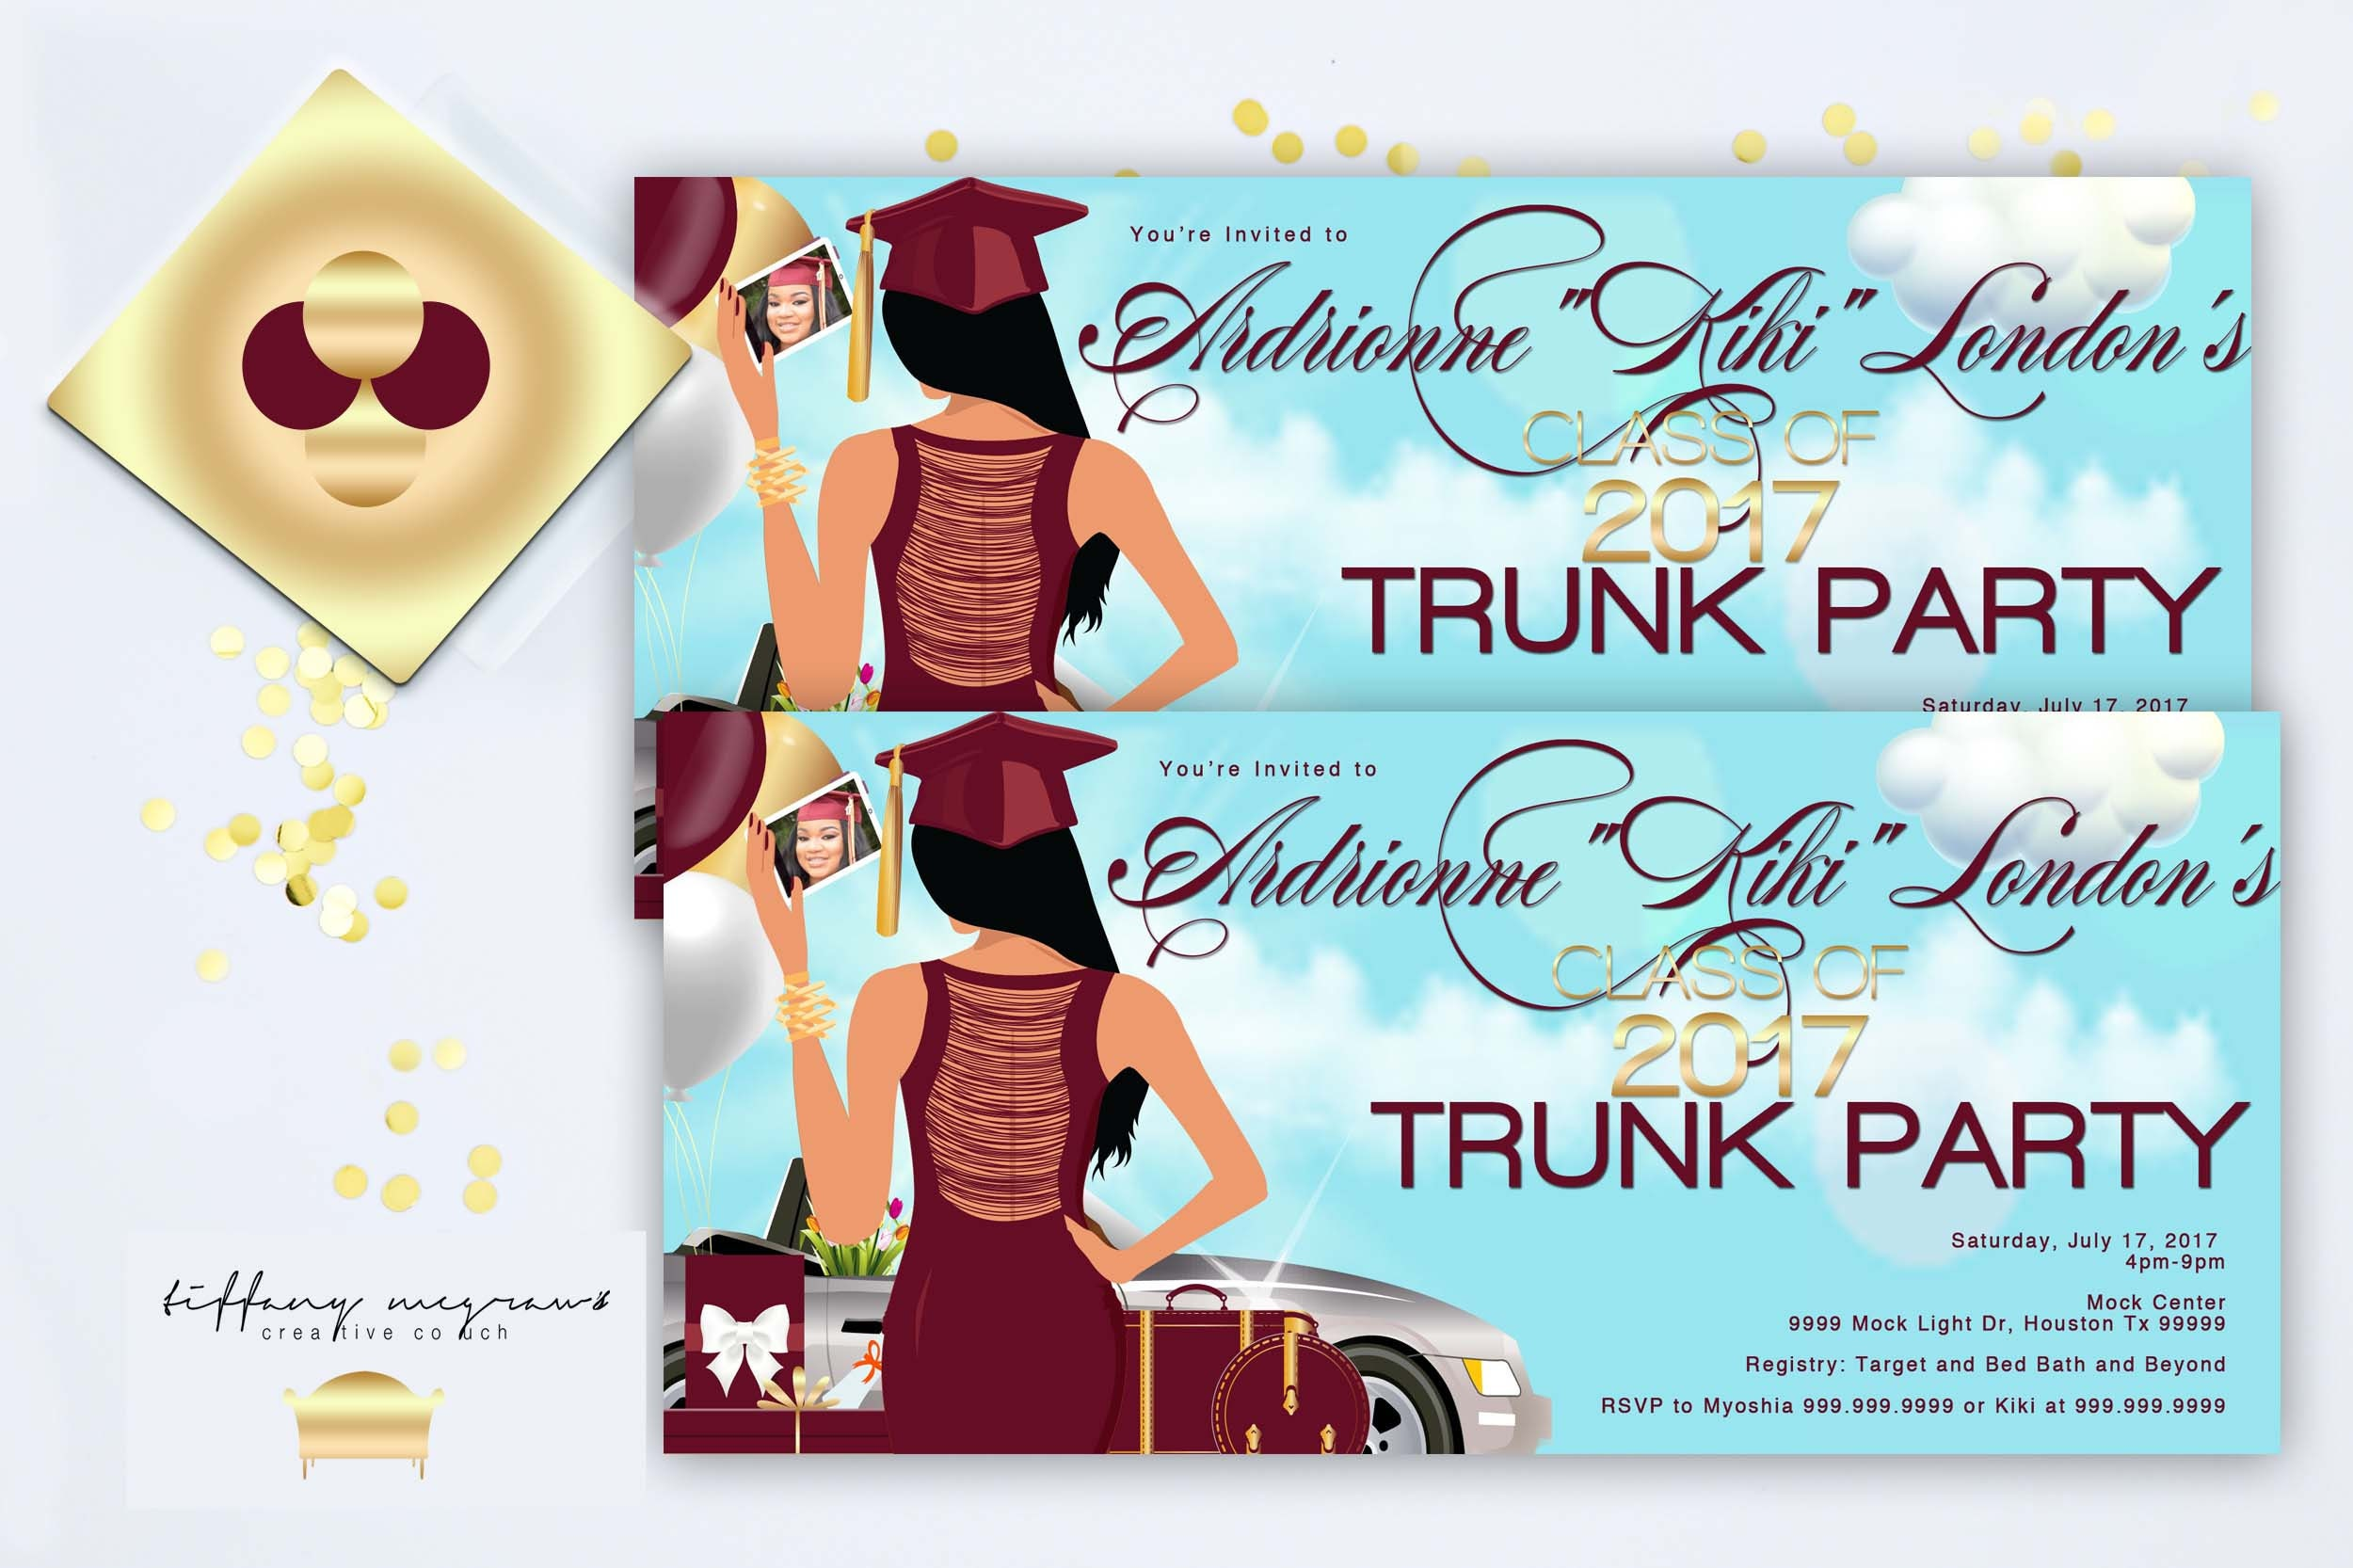 selfie inspired trunk party invite